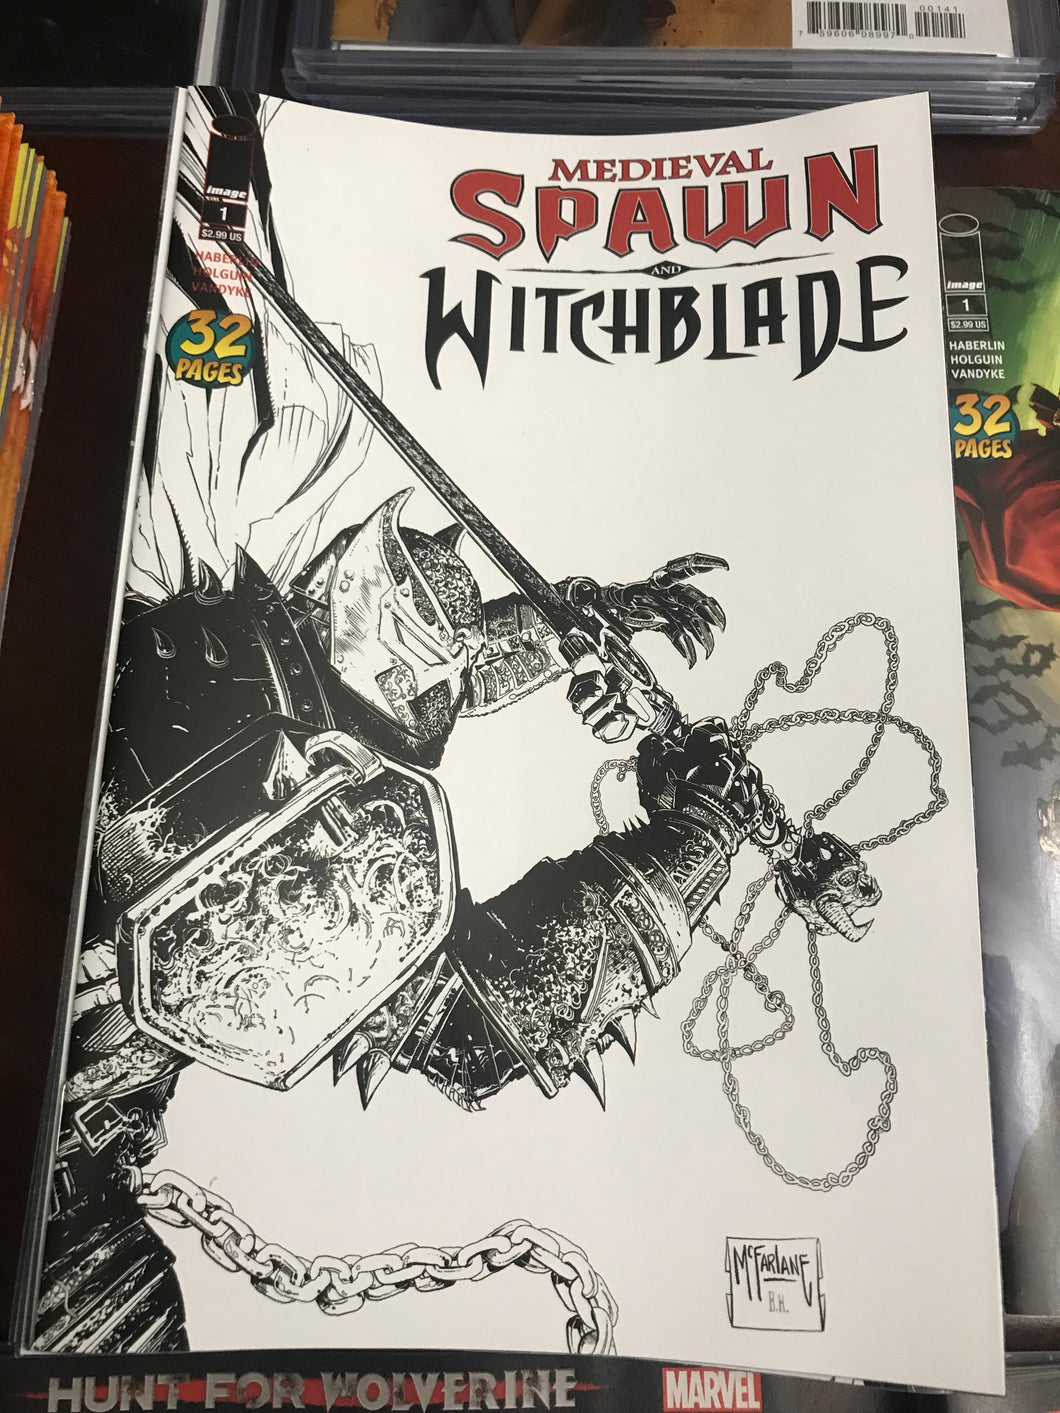 MEDIEVAL SPAWN WITCHBLADE #1 (OF 4) CVR C B&W MCFARLANE  RELEASE DATE 05/09